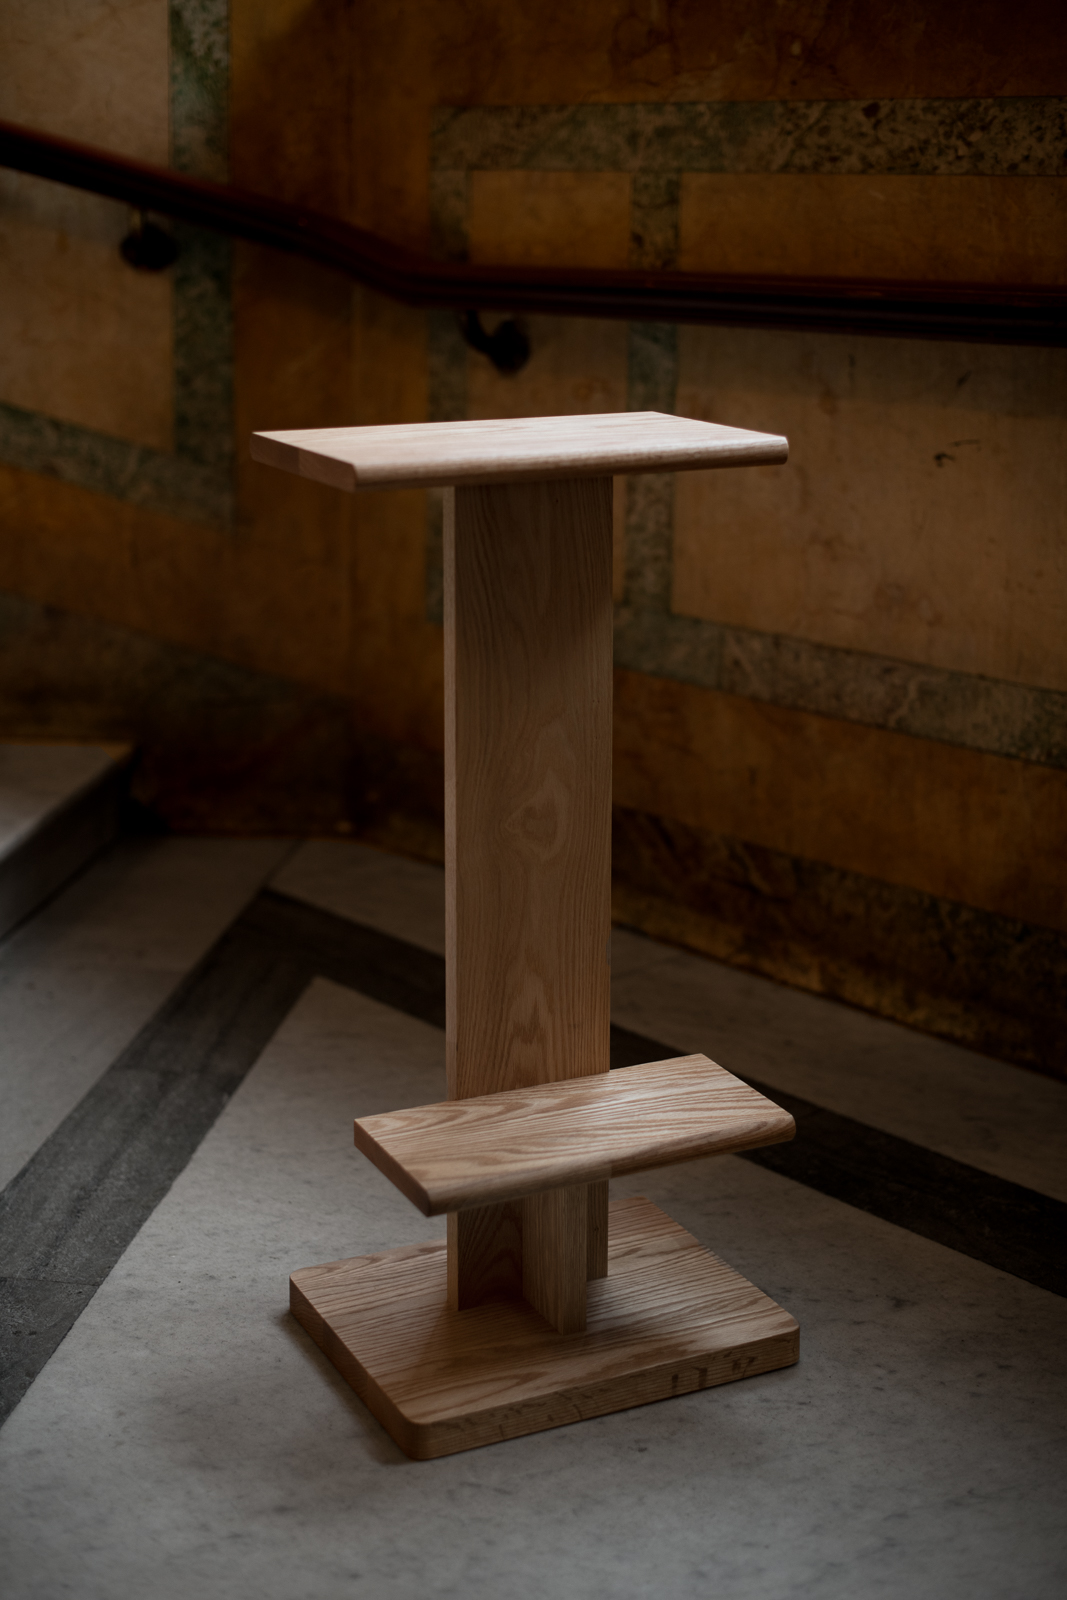 The 'Tawa' barstool by Anderssen & Voll for Ariake - more religious alter than barfly bar stool but oh so good! Photograph by Sebastian Stadler.